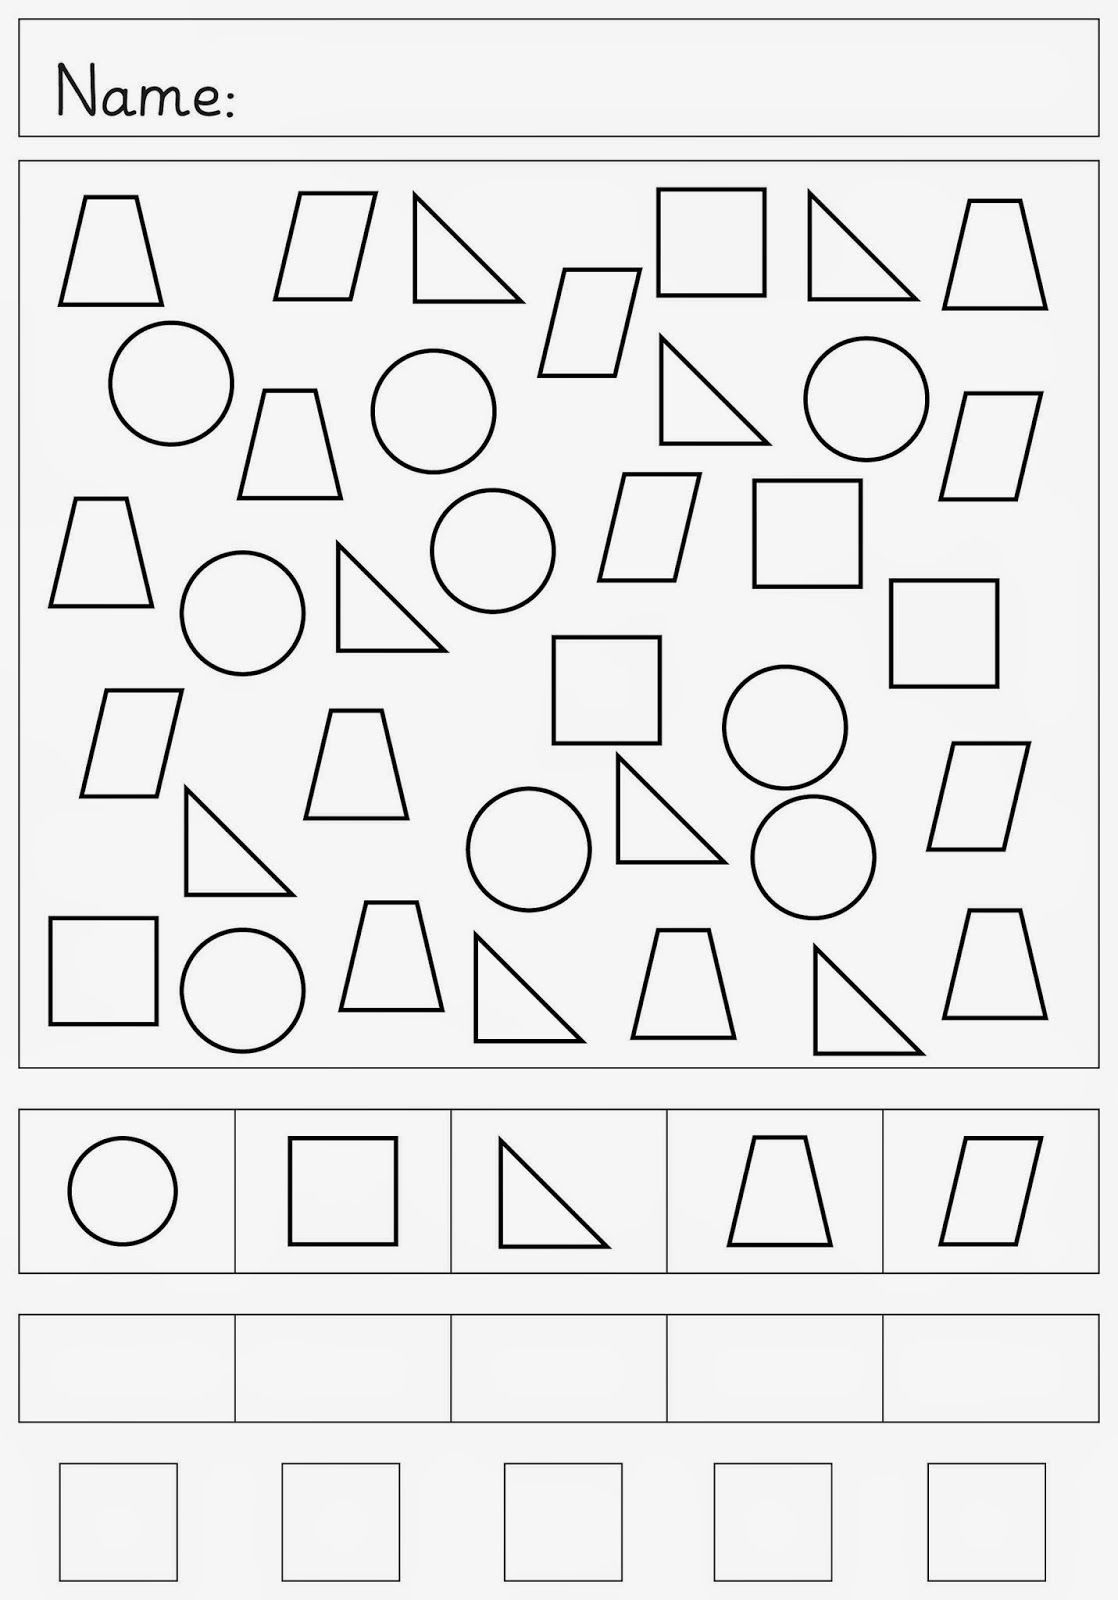 5 Geometry Patterns Worksheet Strichlisten Noch Ein Paar